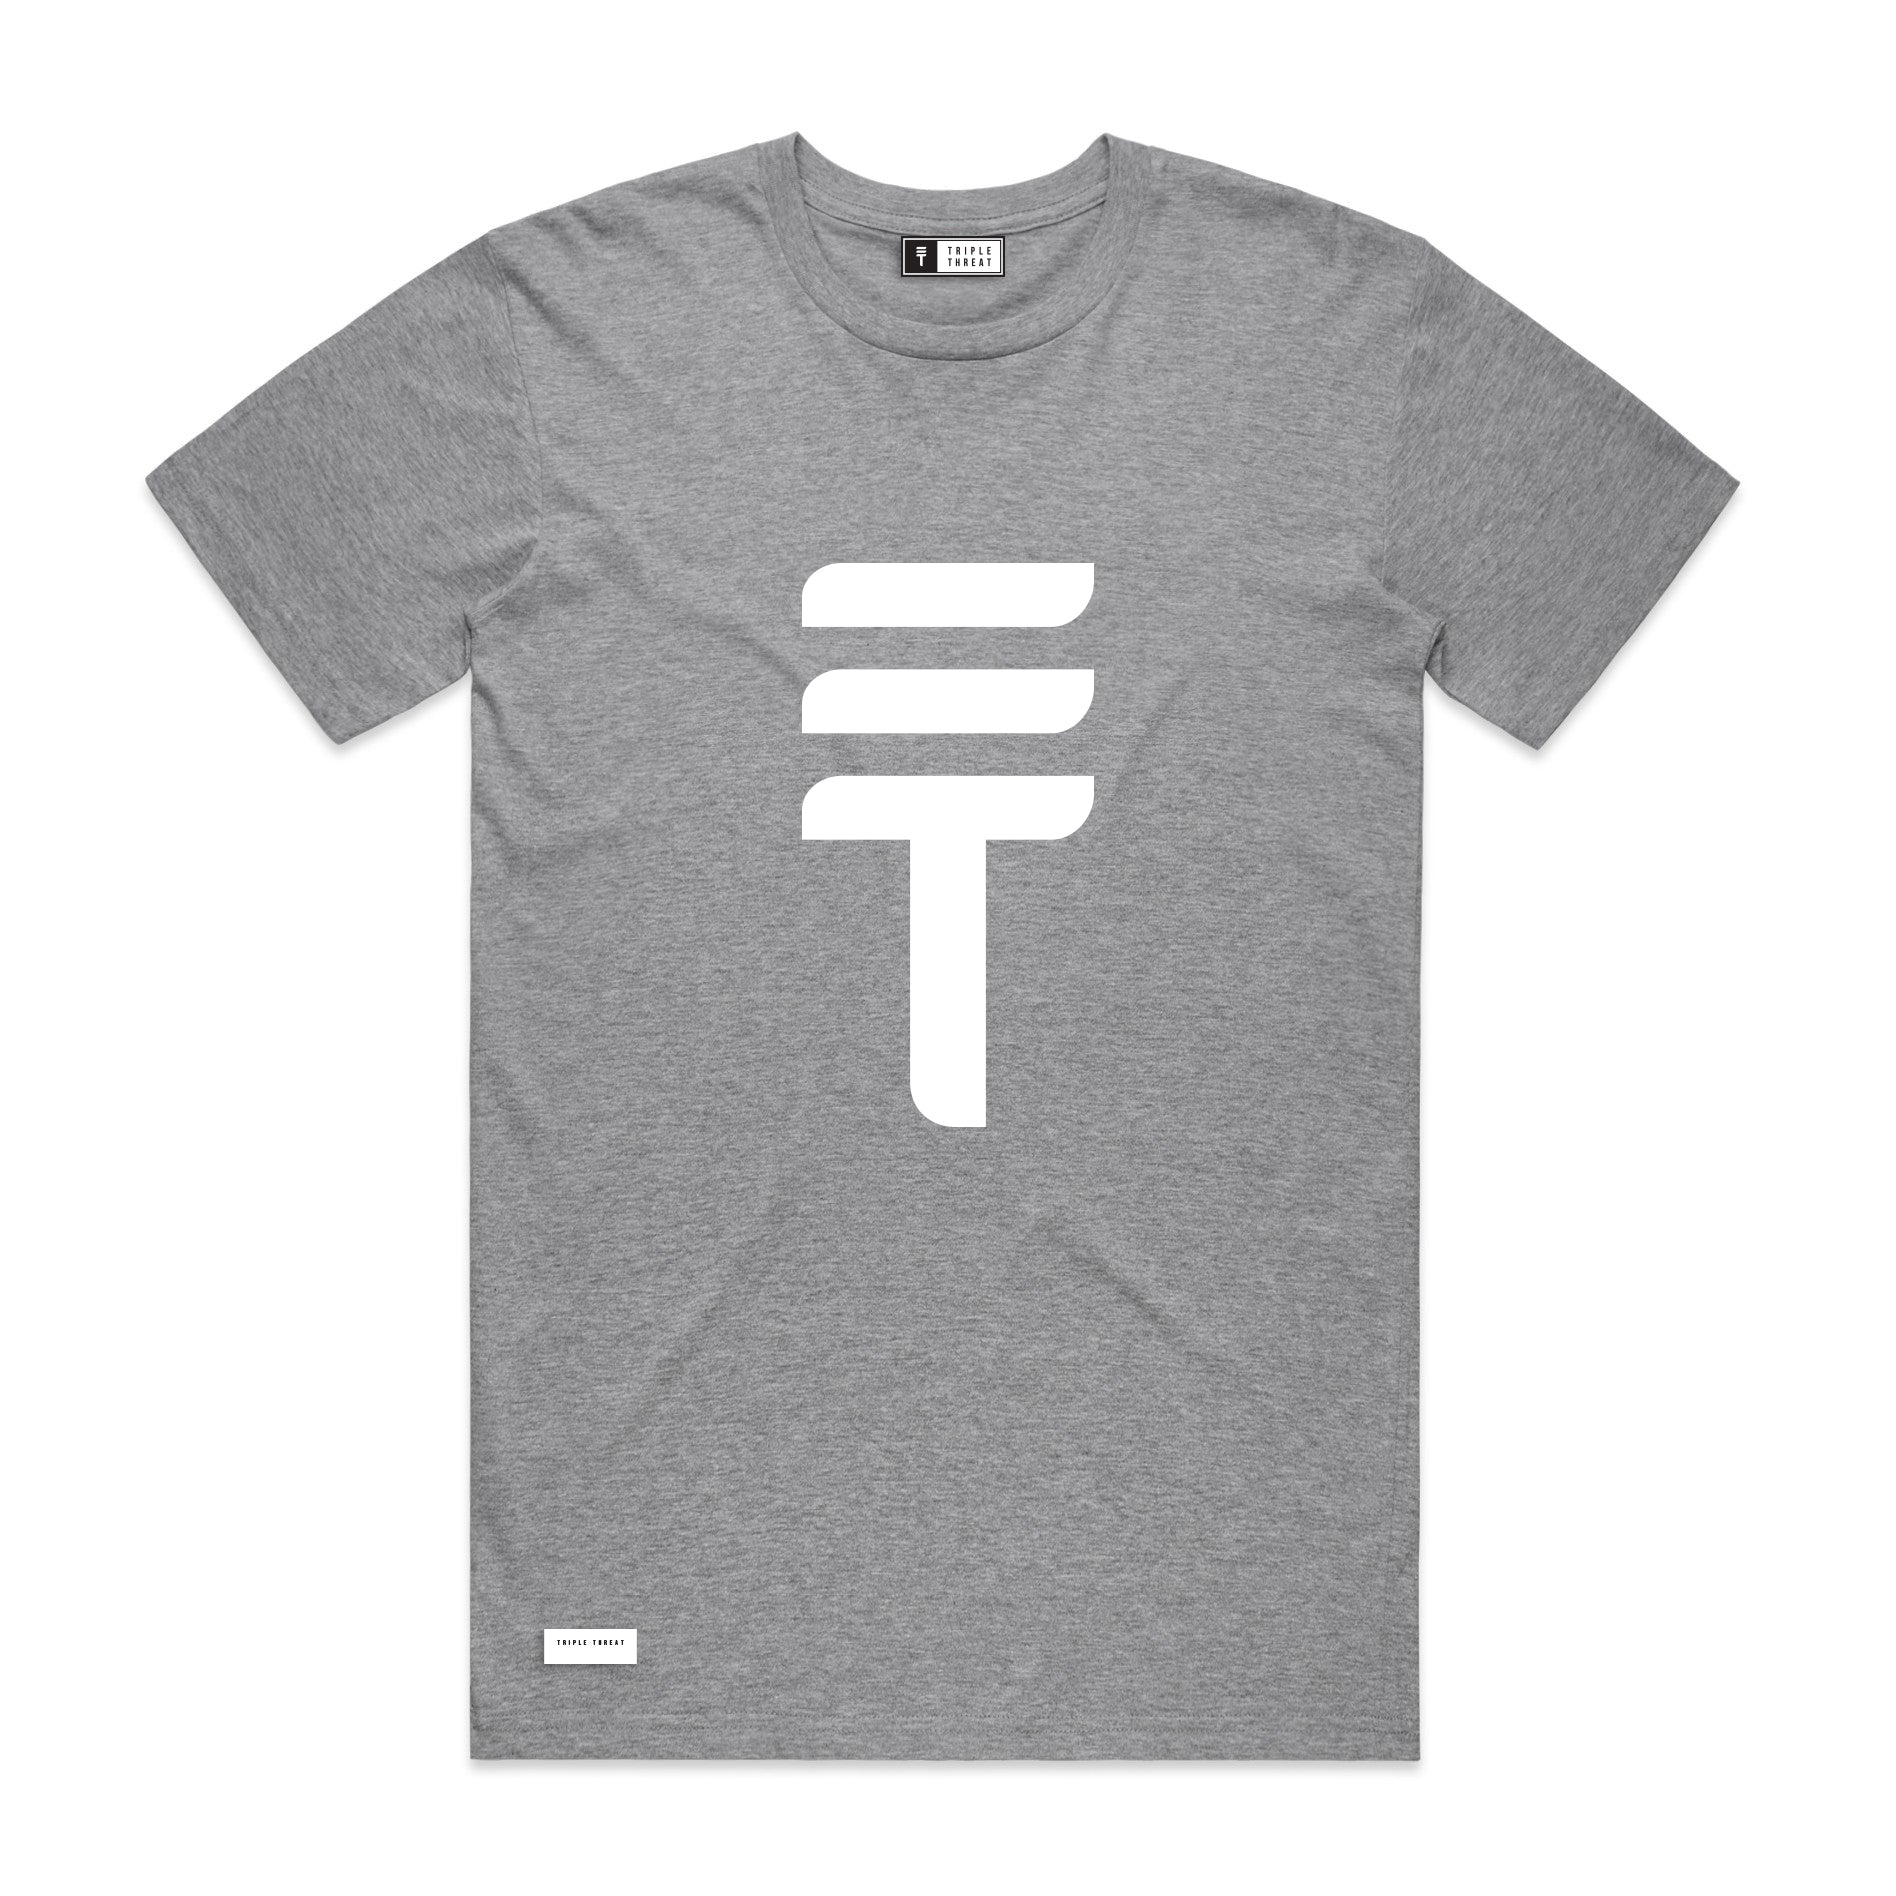 BIG LOGO T-SHIRT - GREY